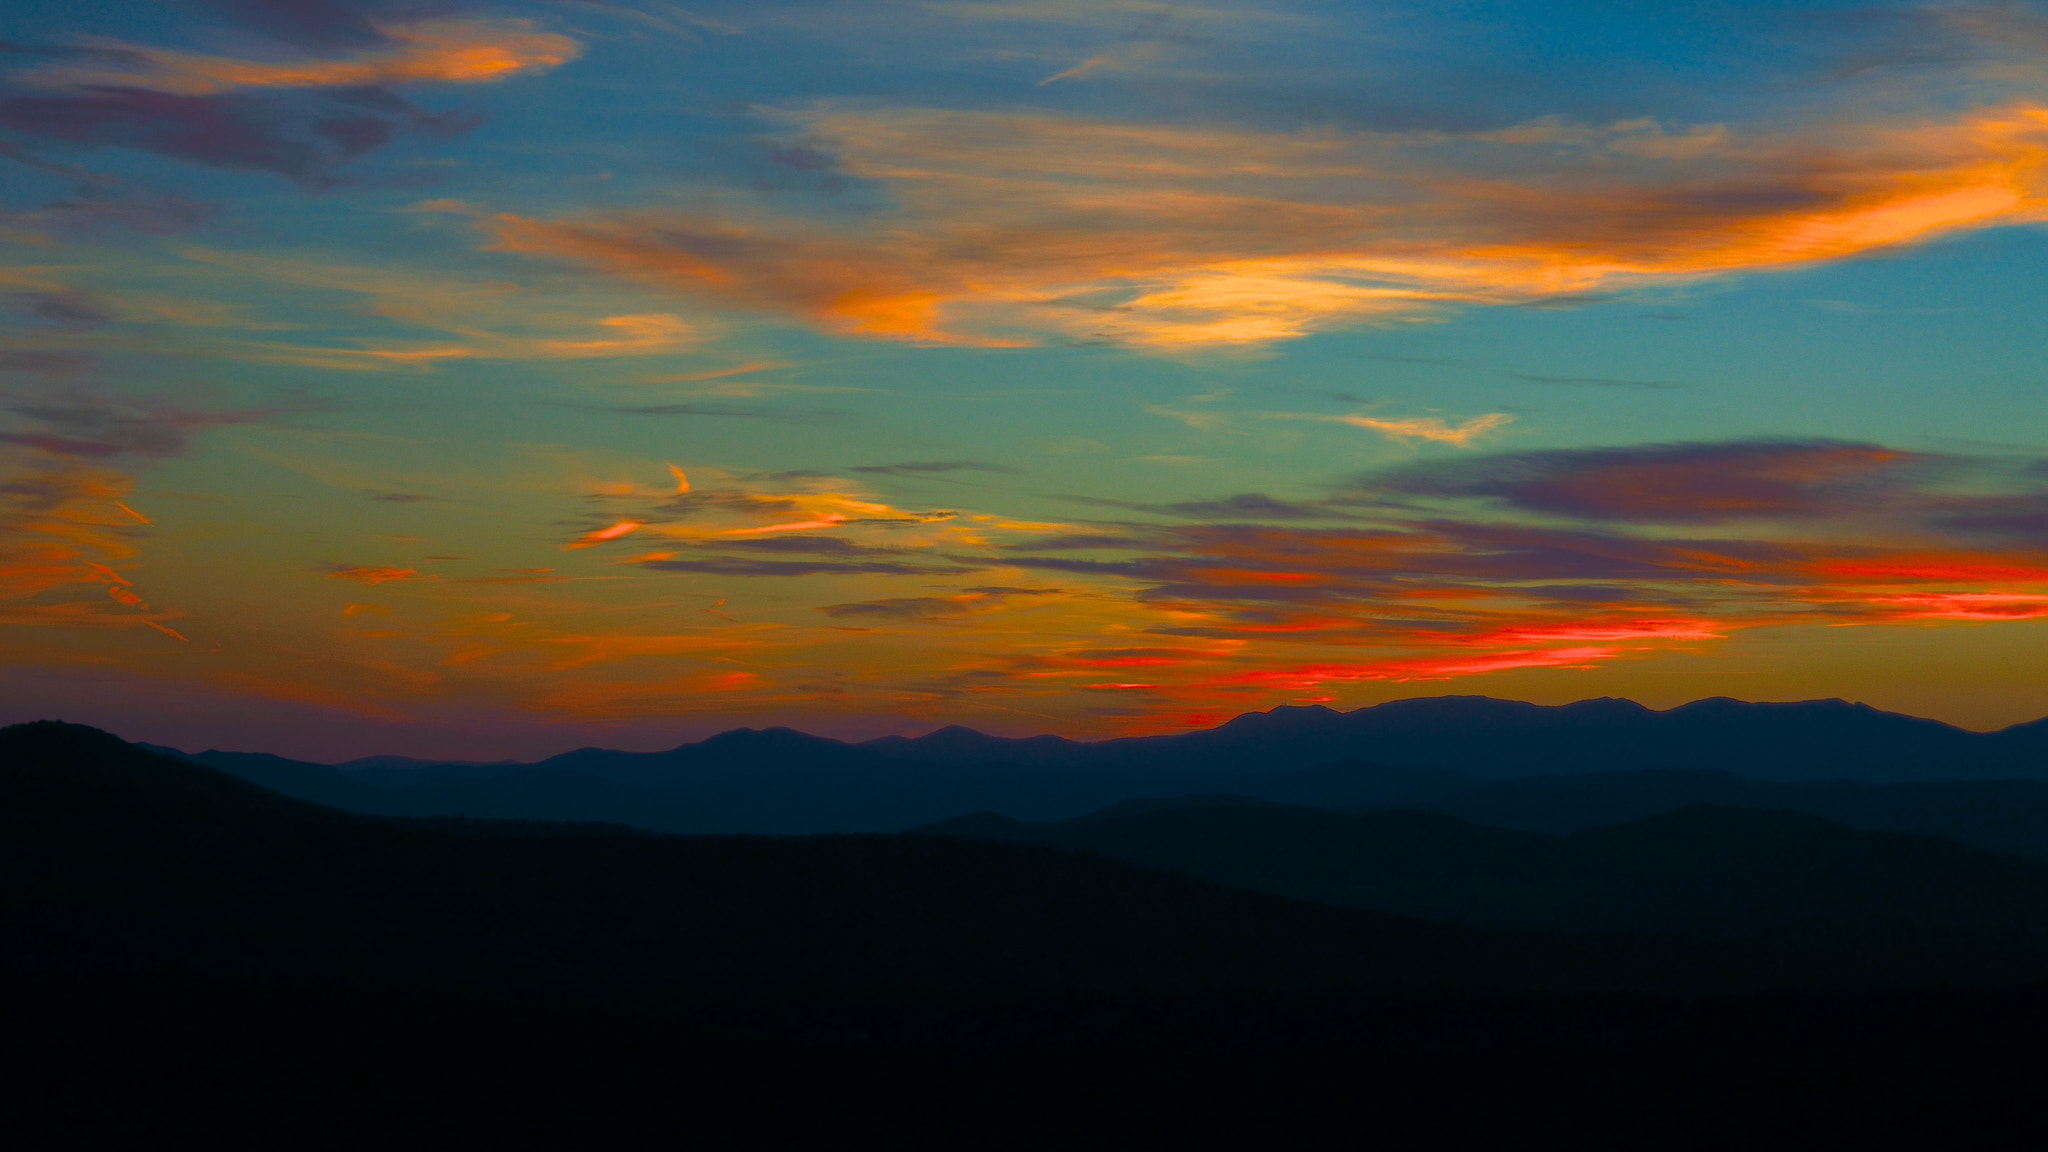 Photograph Beautiful Ending by Joseph Broyles on 500px